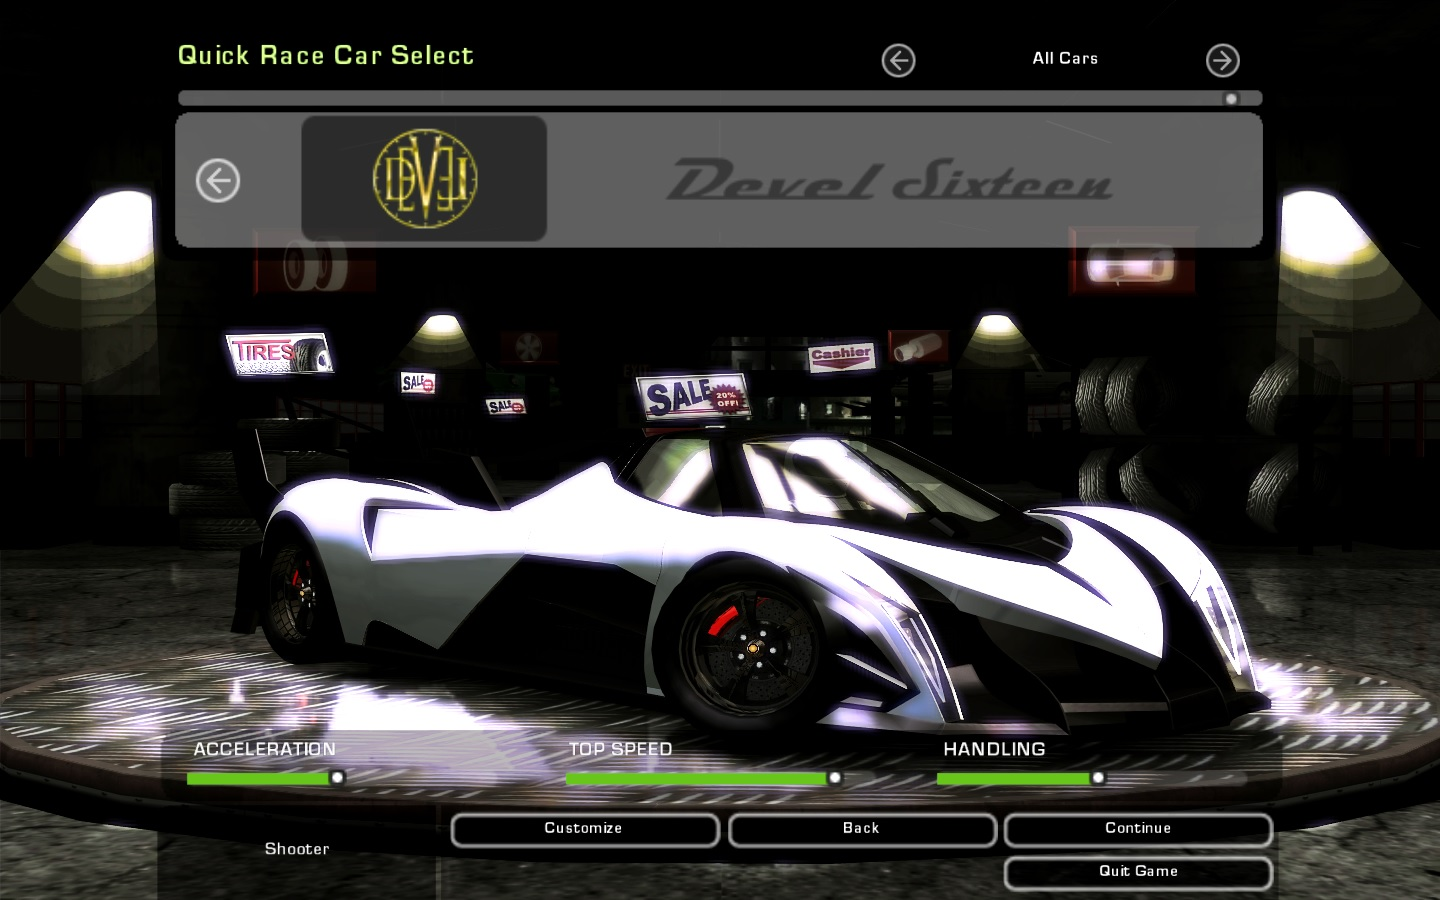 All White Cars Wallpaper Need For Speed Underground 2 Various Devel Sixteen